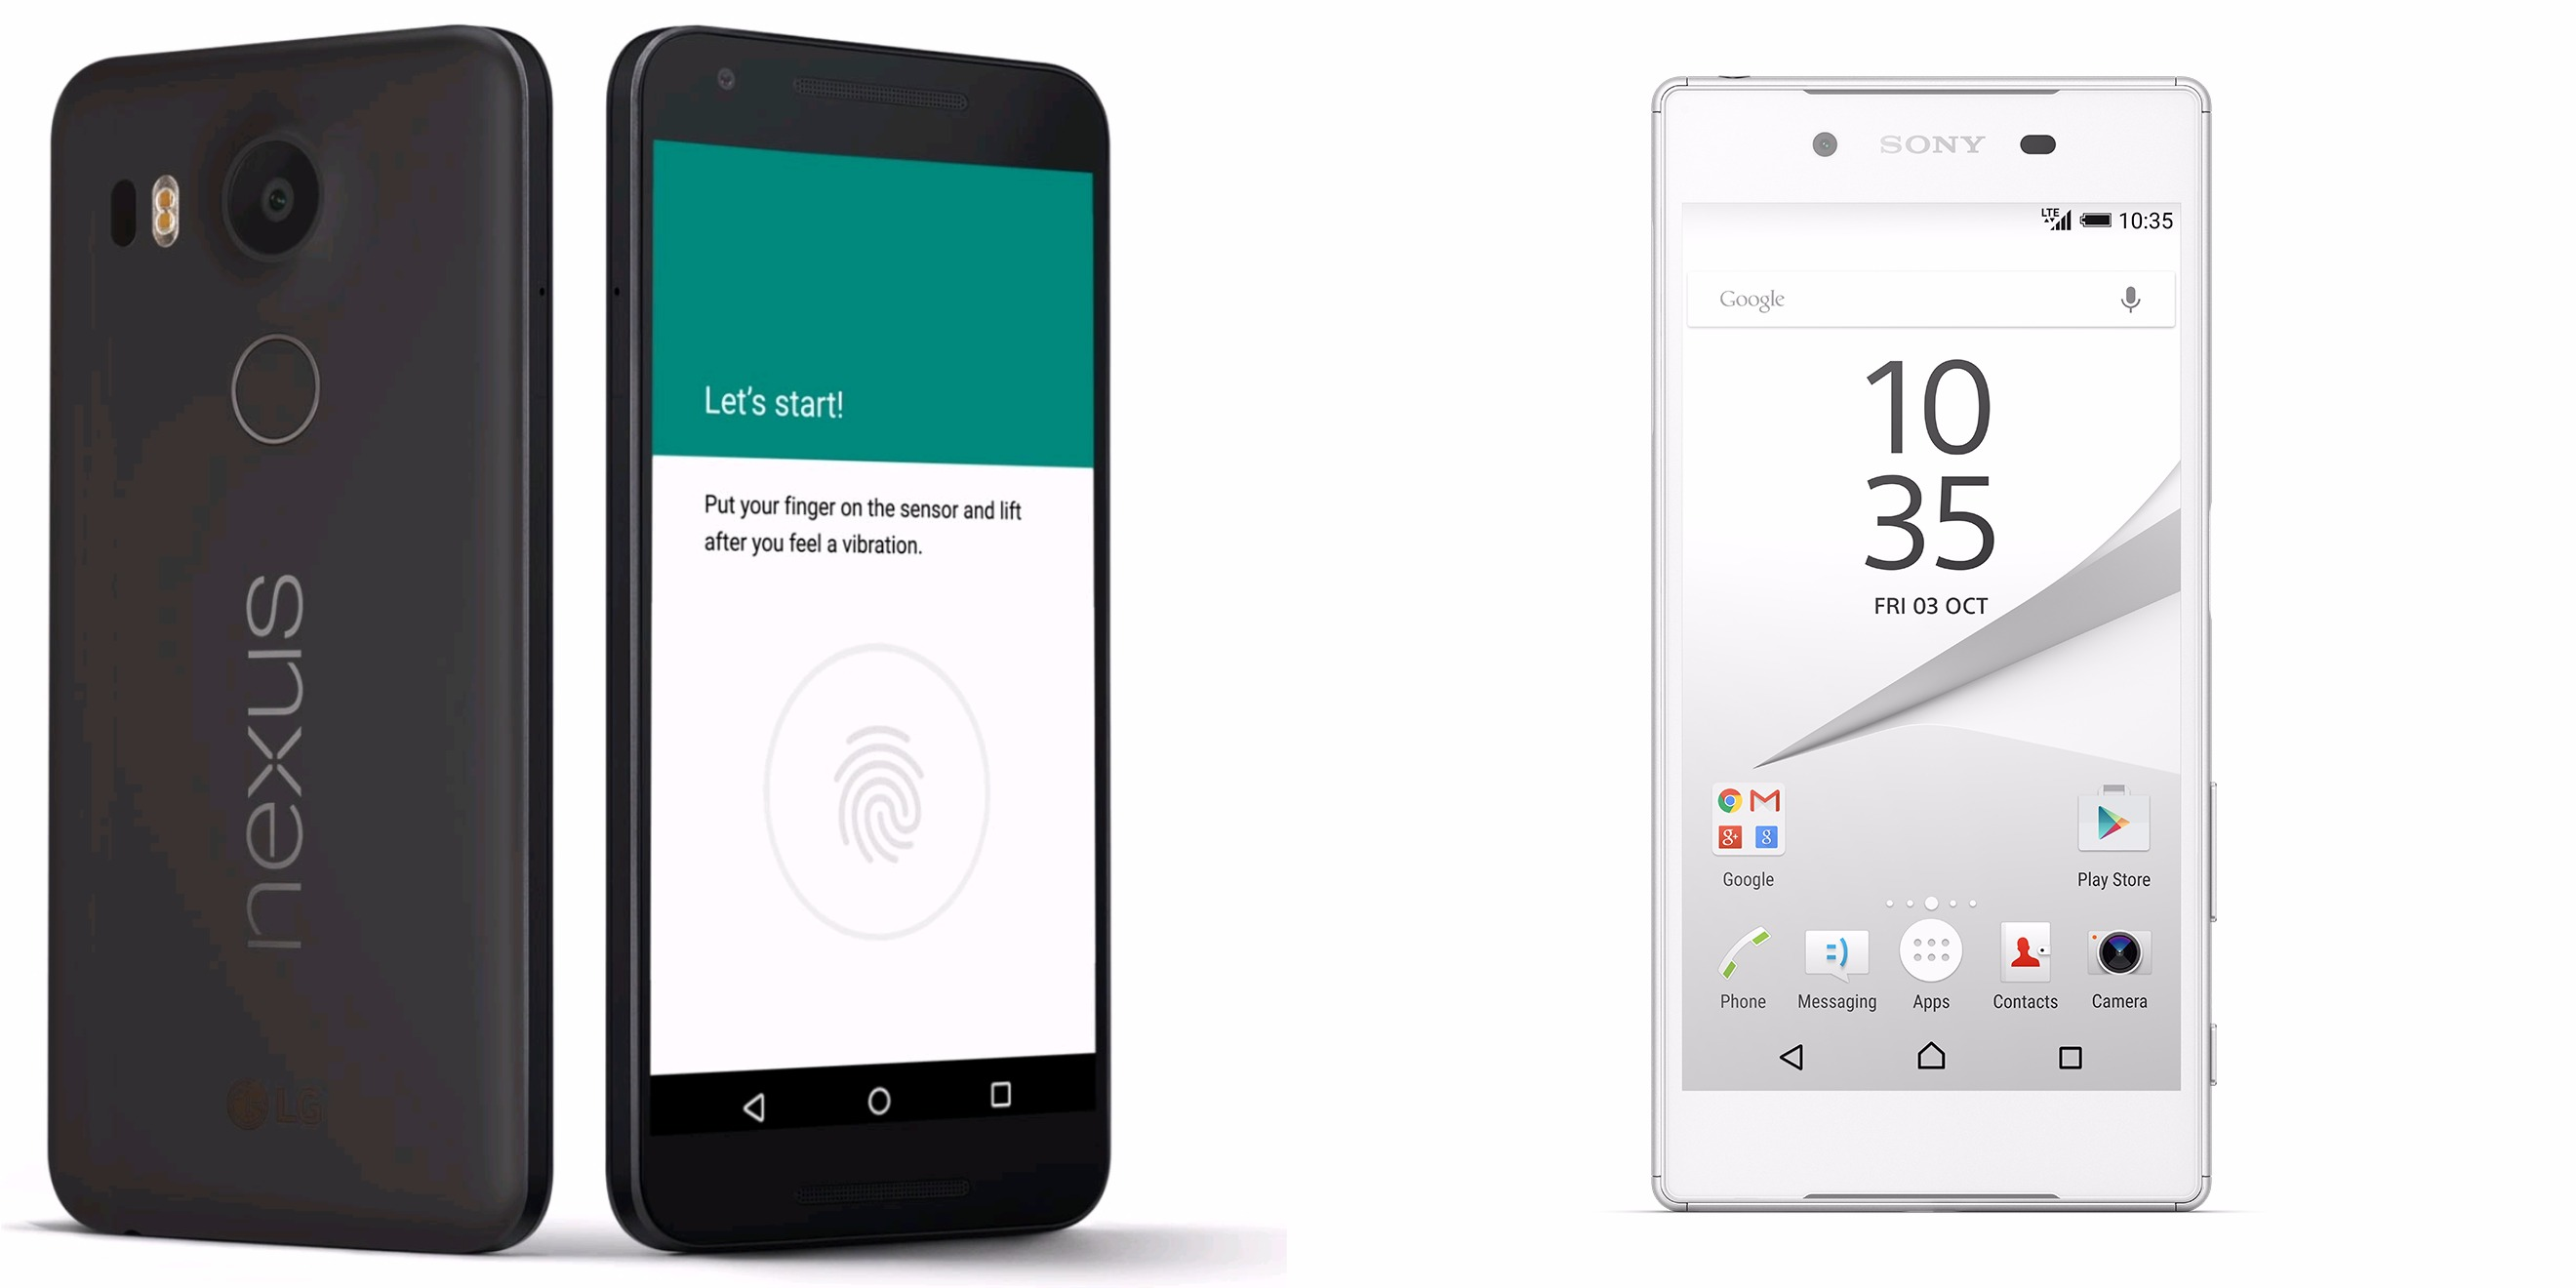 What Smartphone Should I Buy – Nexus 5X or Xperia Z5?